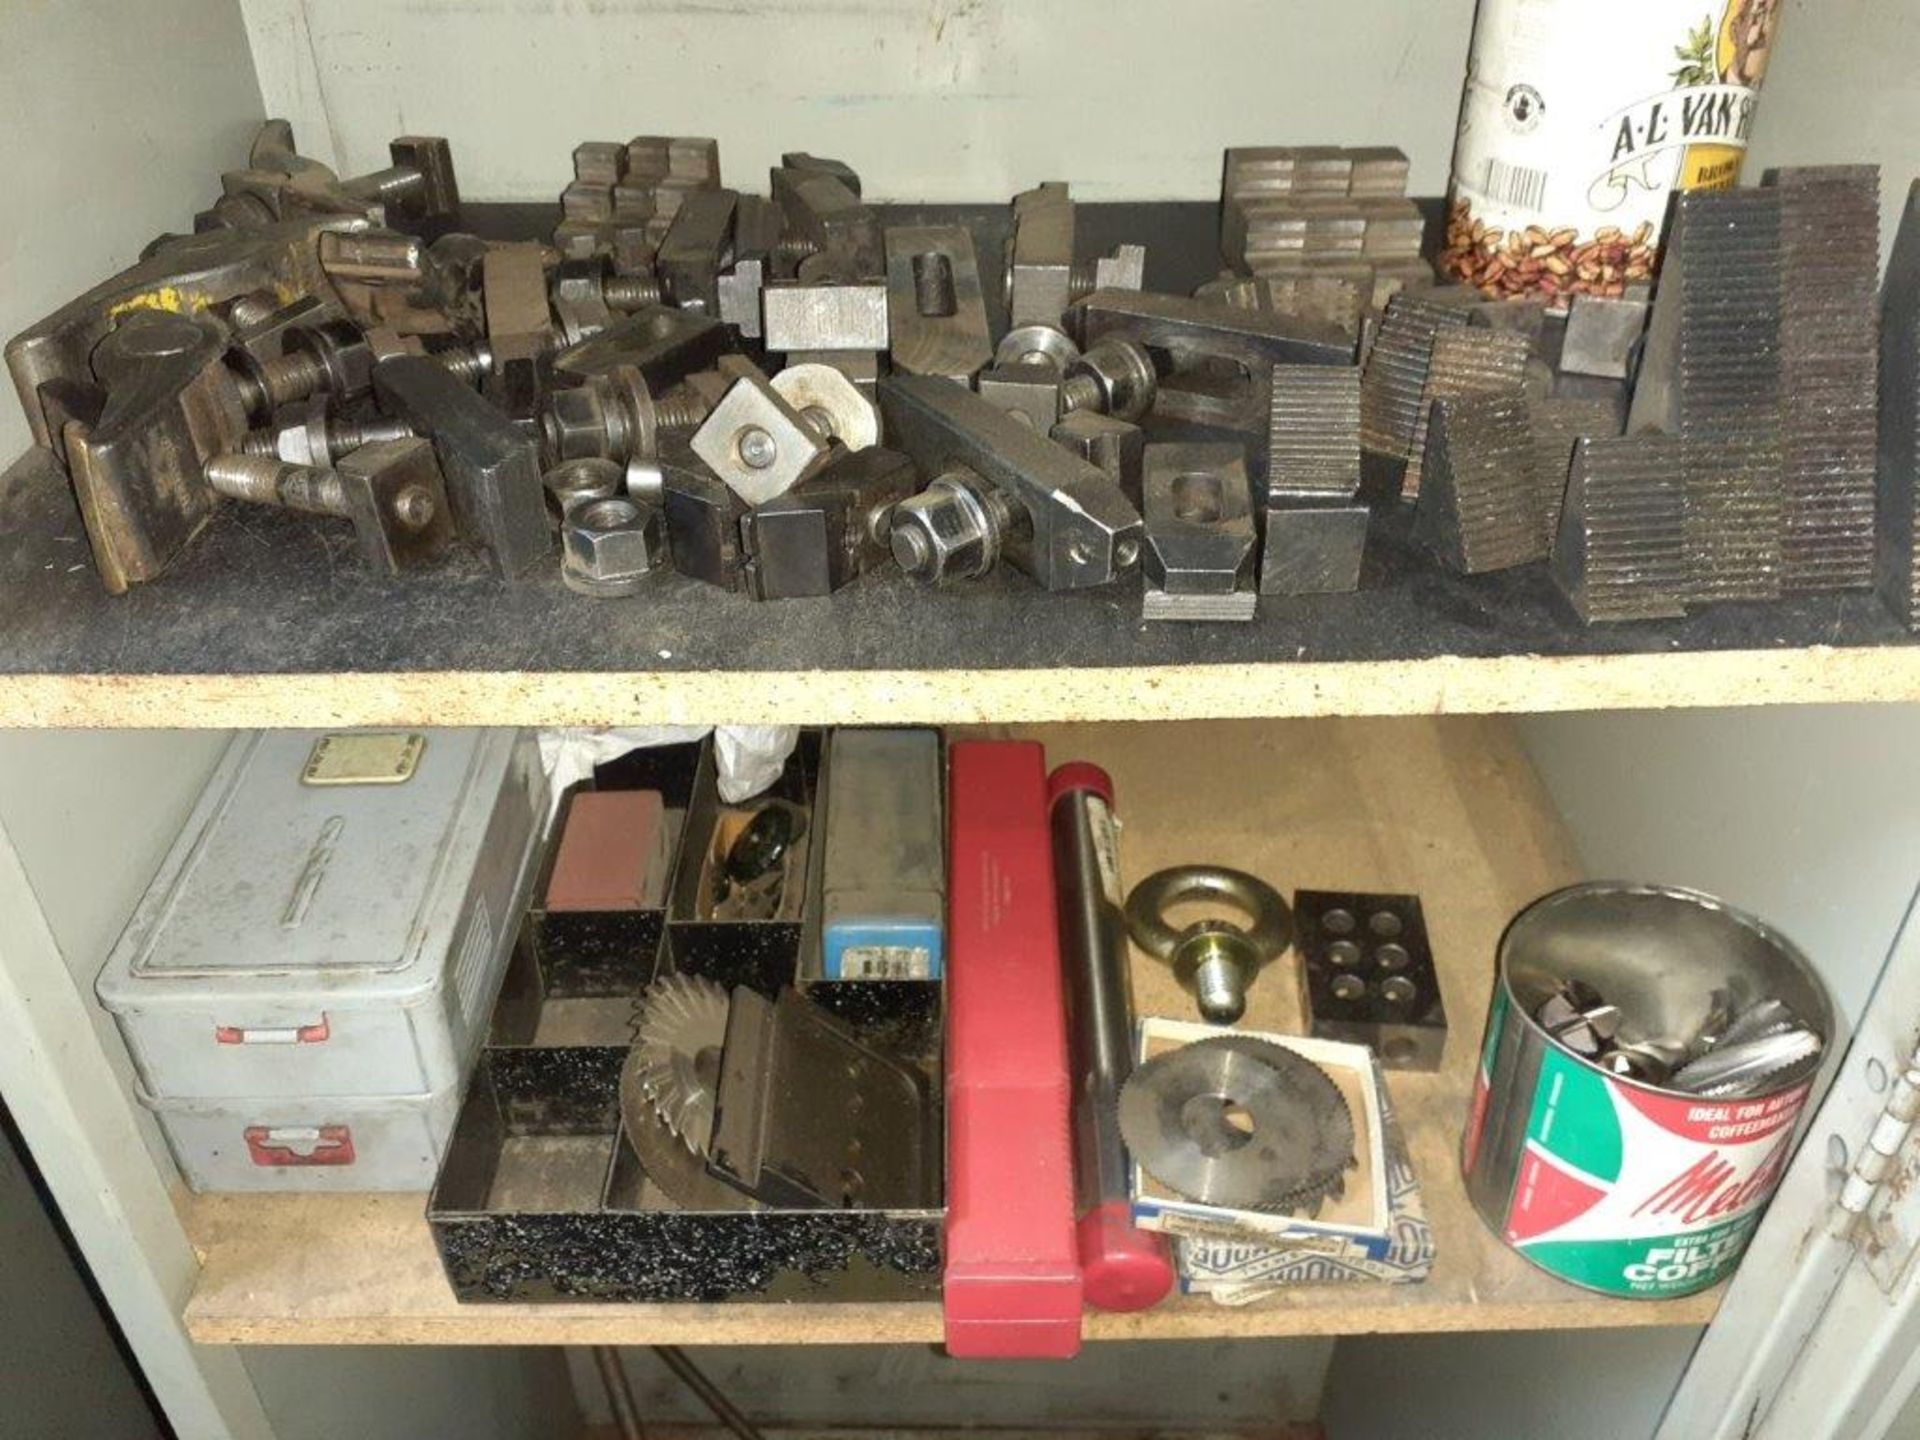 LOT: assorted Milling Machine Tools, ie: Milling Knives, Table Mounts, Drill Bits, Magnetic Tool - Image 3 of 5